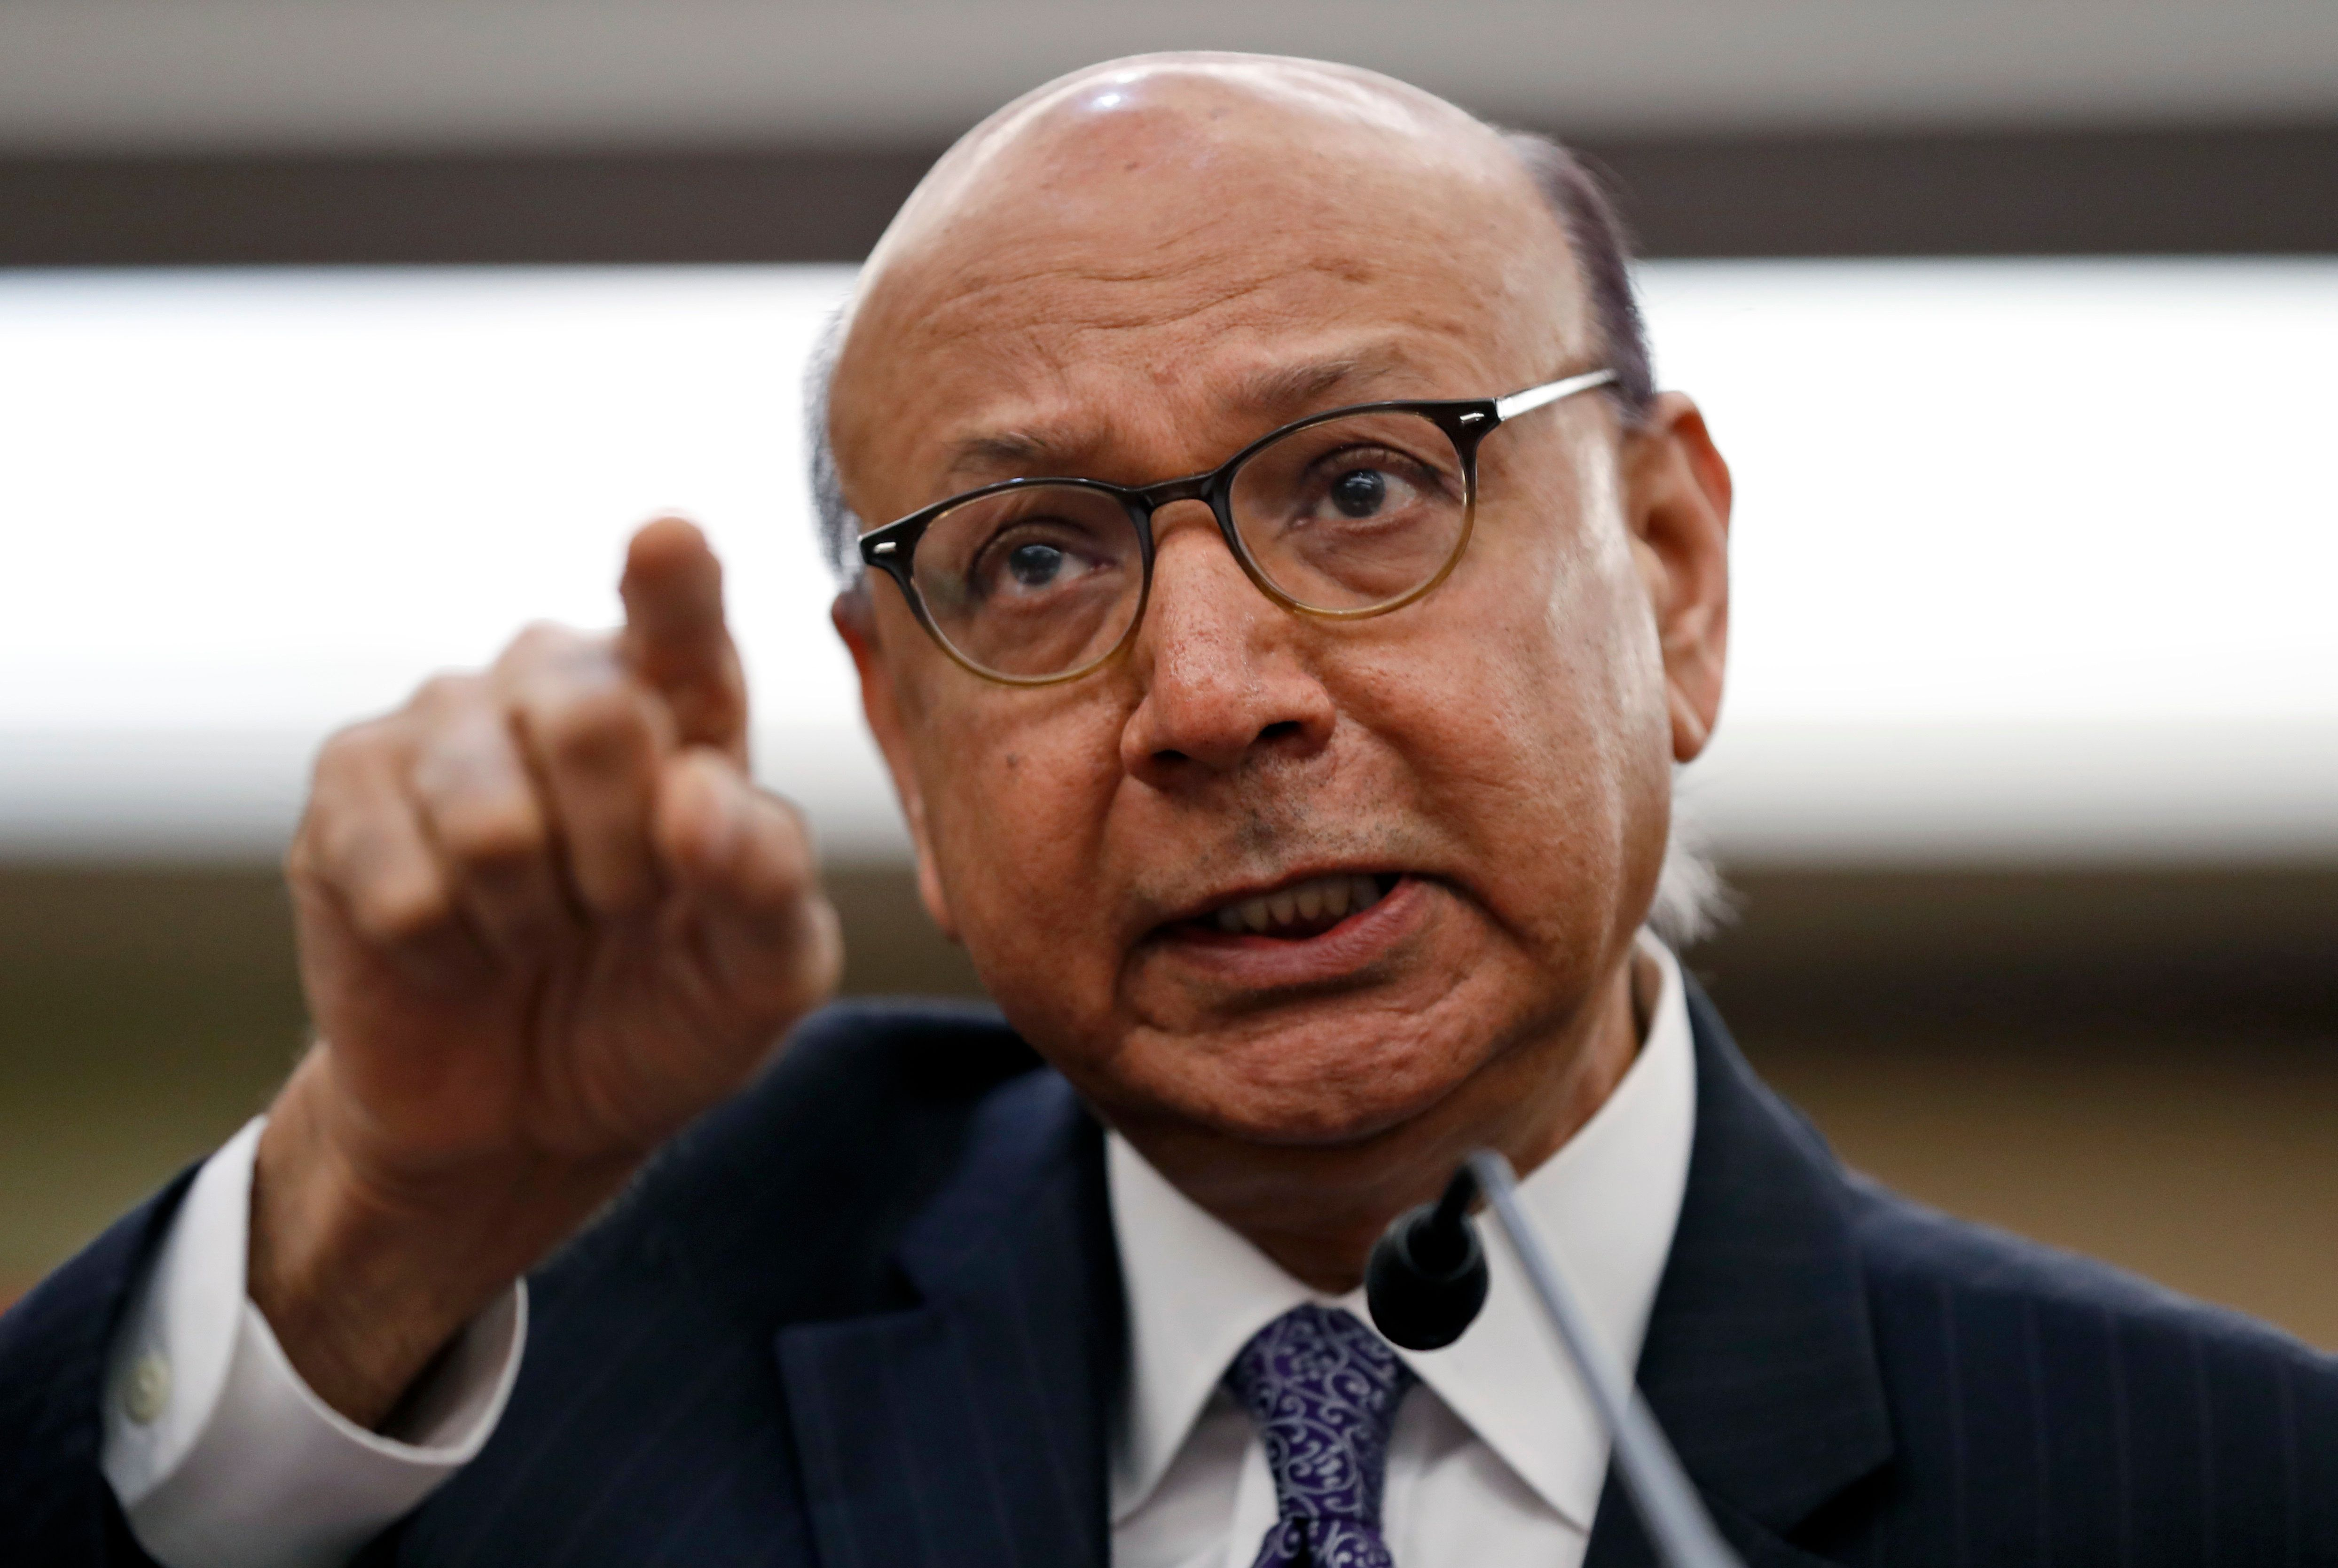 Khizr Khan, a Pakistani-American lawyer and gold star father, speaks on Capitol Hill in Washington, Thursday, Feb. 2, 2017, during a House Democratic forum on President Donald Trump's executive order on immigration.  (AP Photo/Alex Brandon)